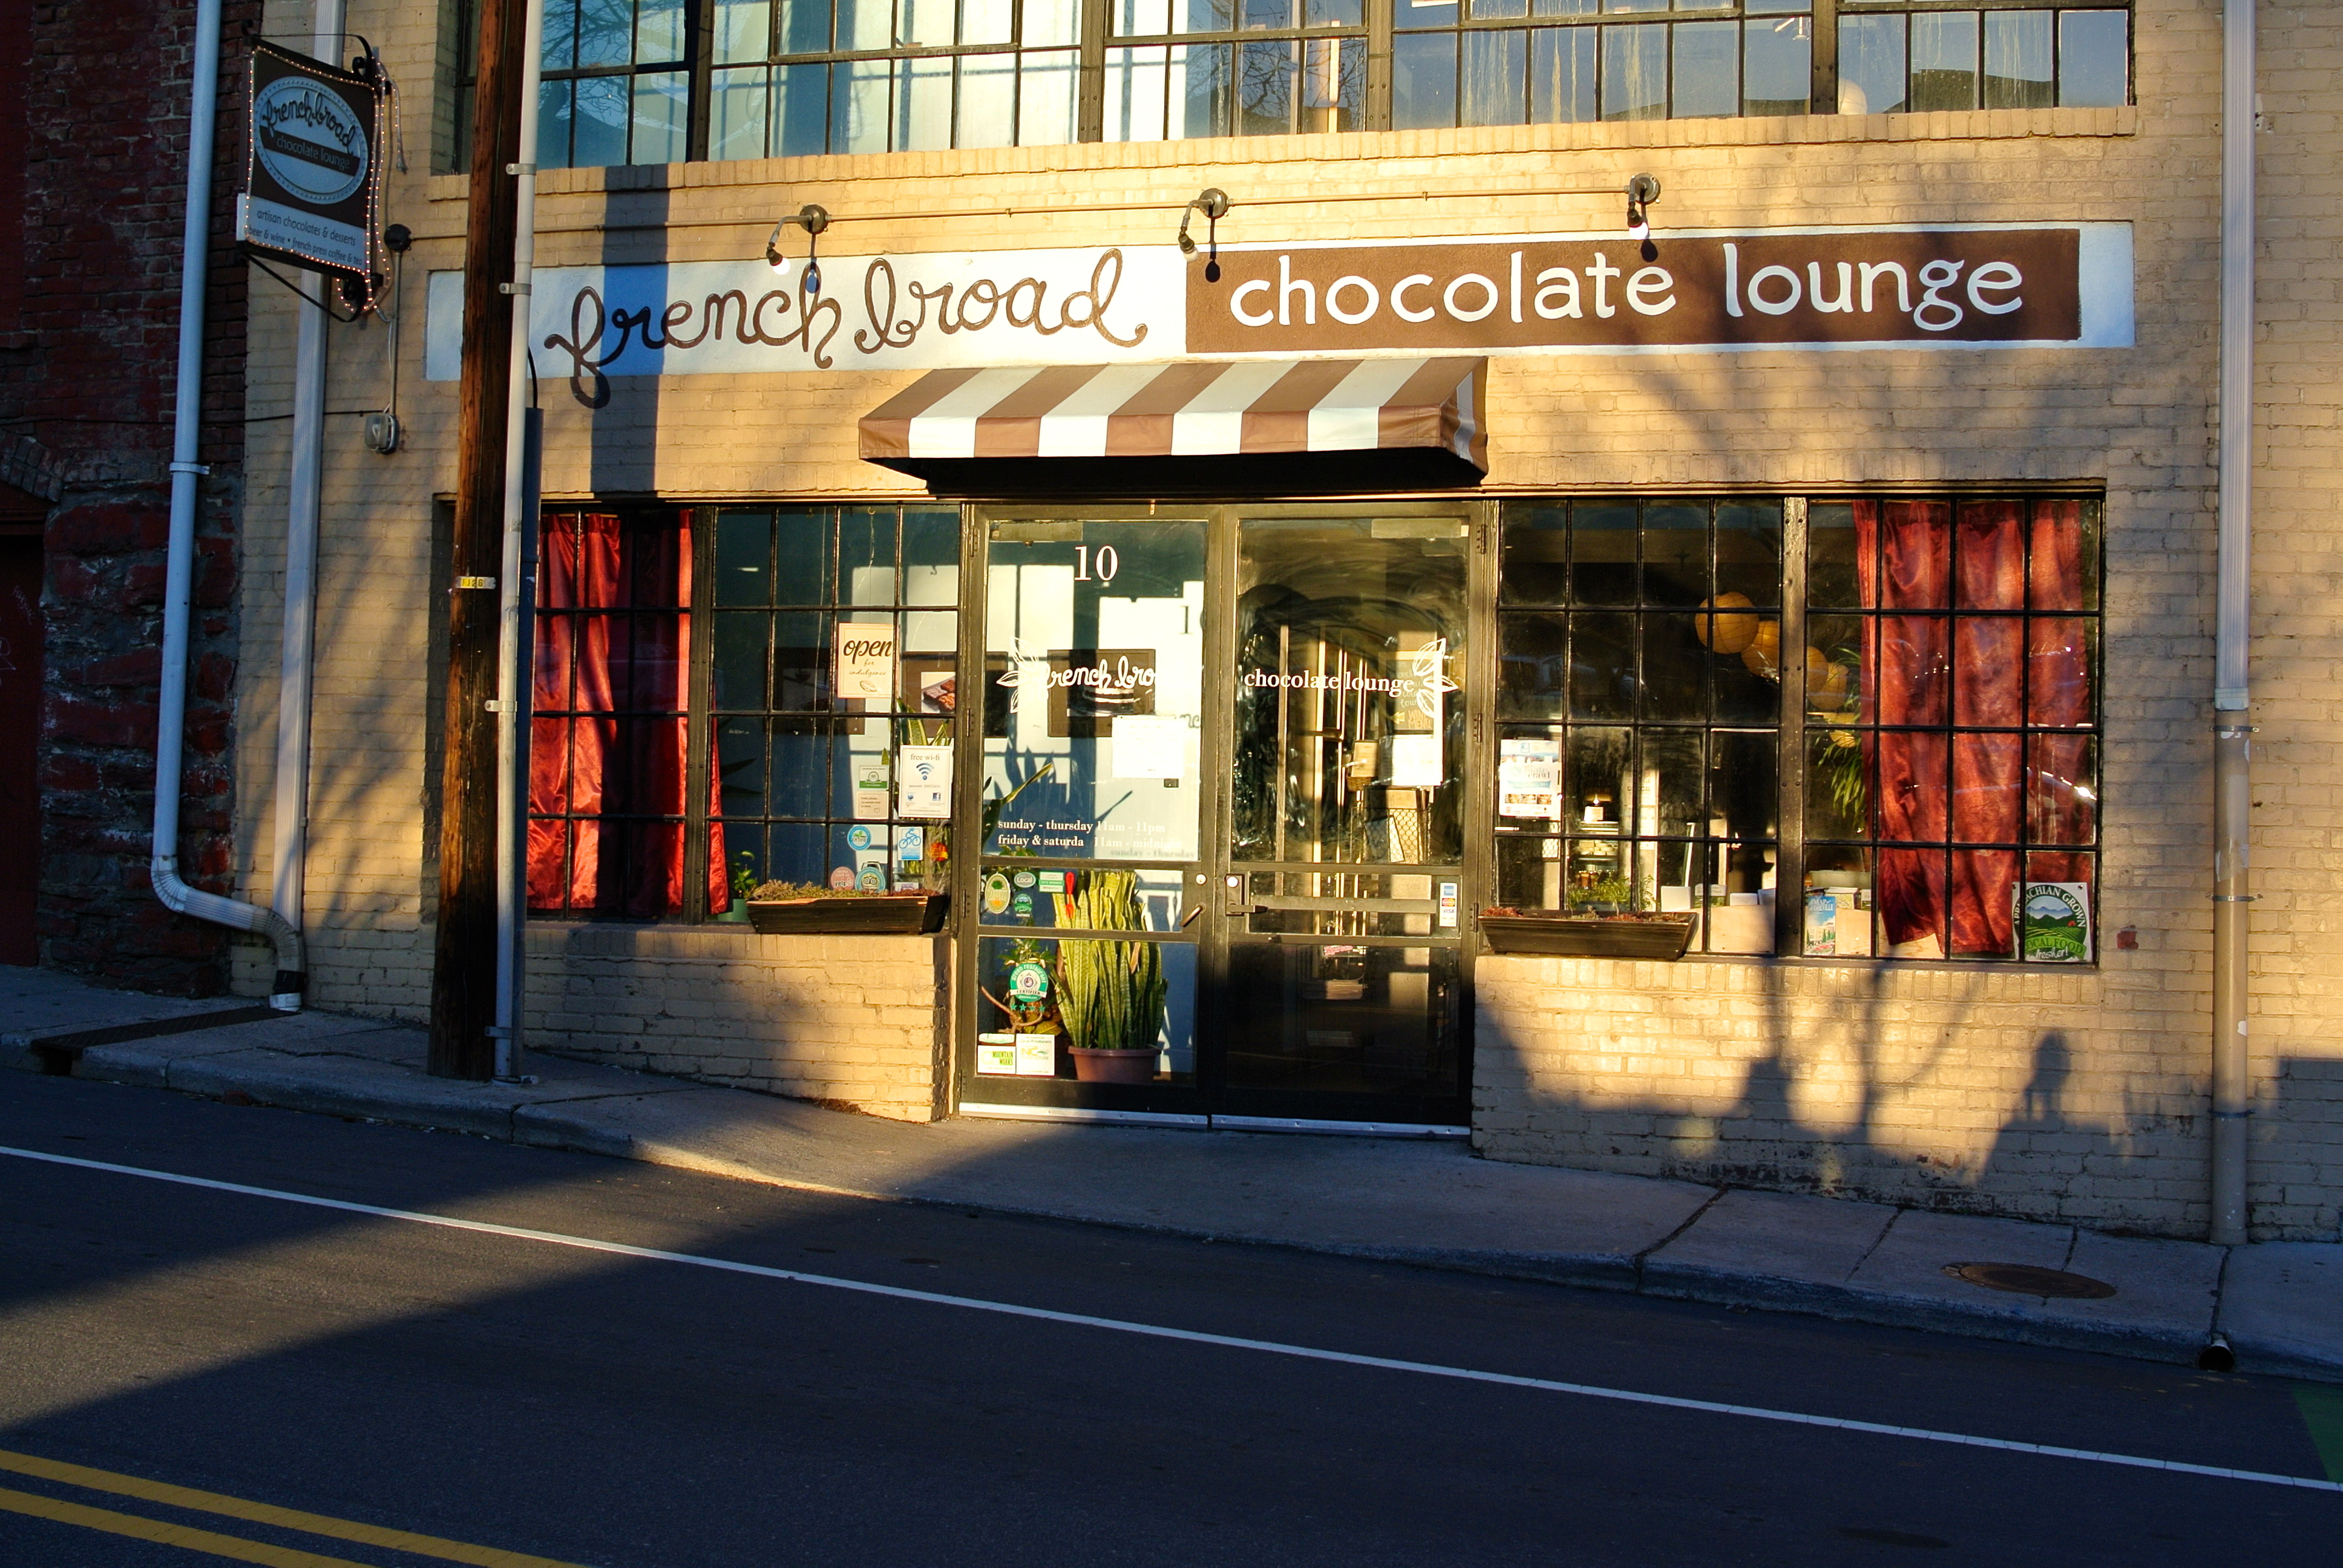 French Broad Chocolate Lounge – Flour and Fancy